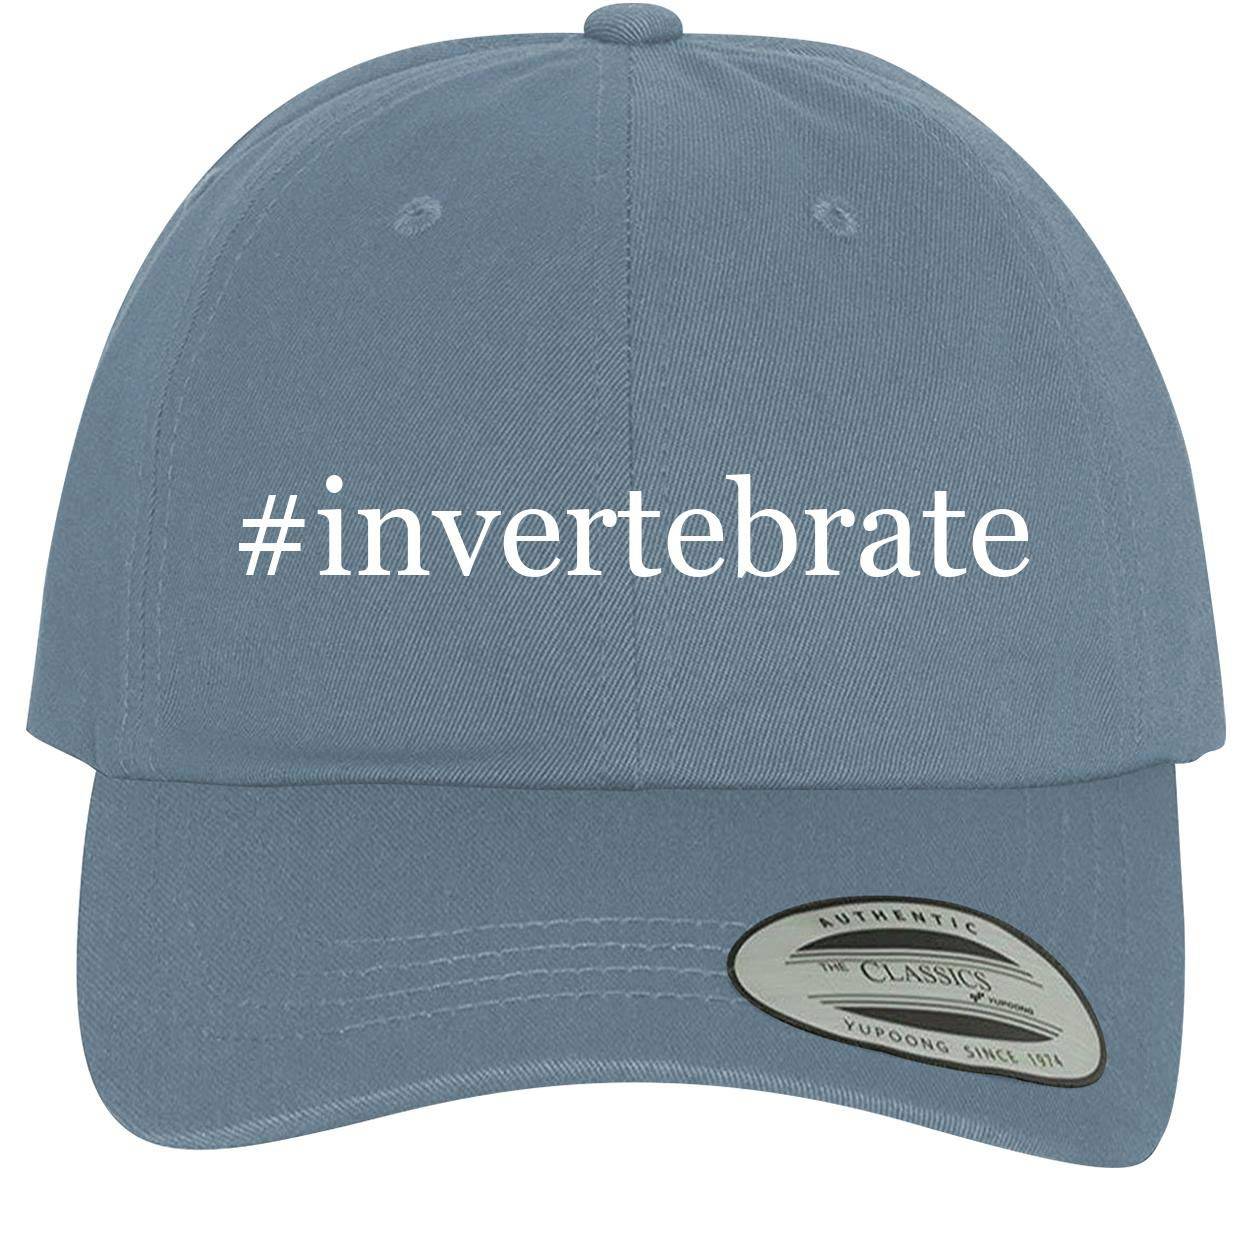 Comfortable Dad Hat Baseball Cap BH Cool Designs #Invertebrate